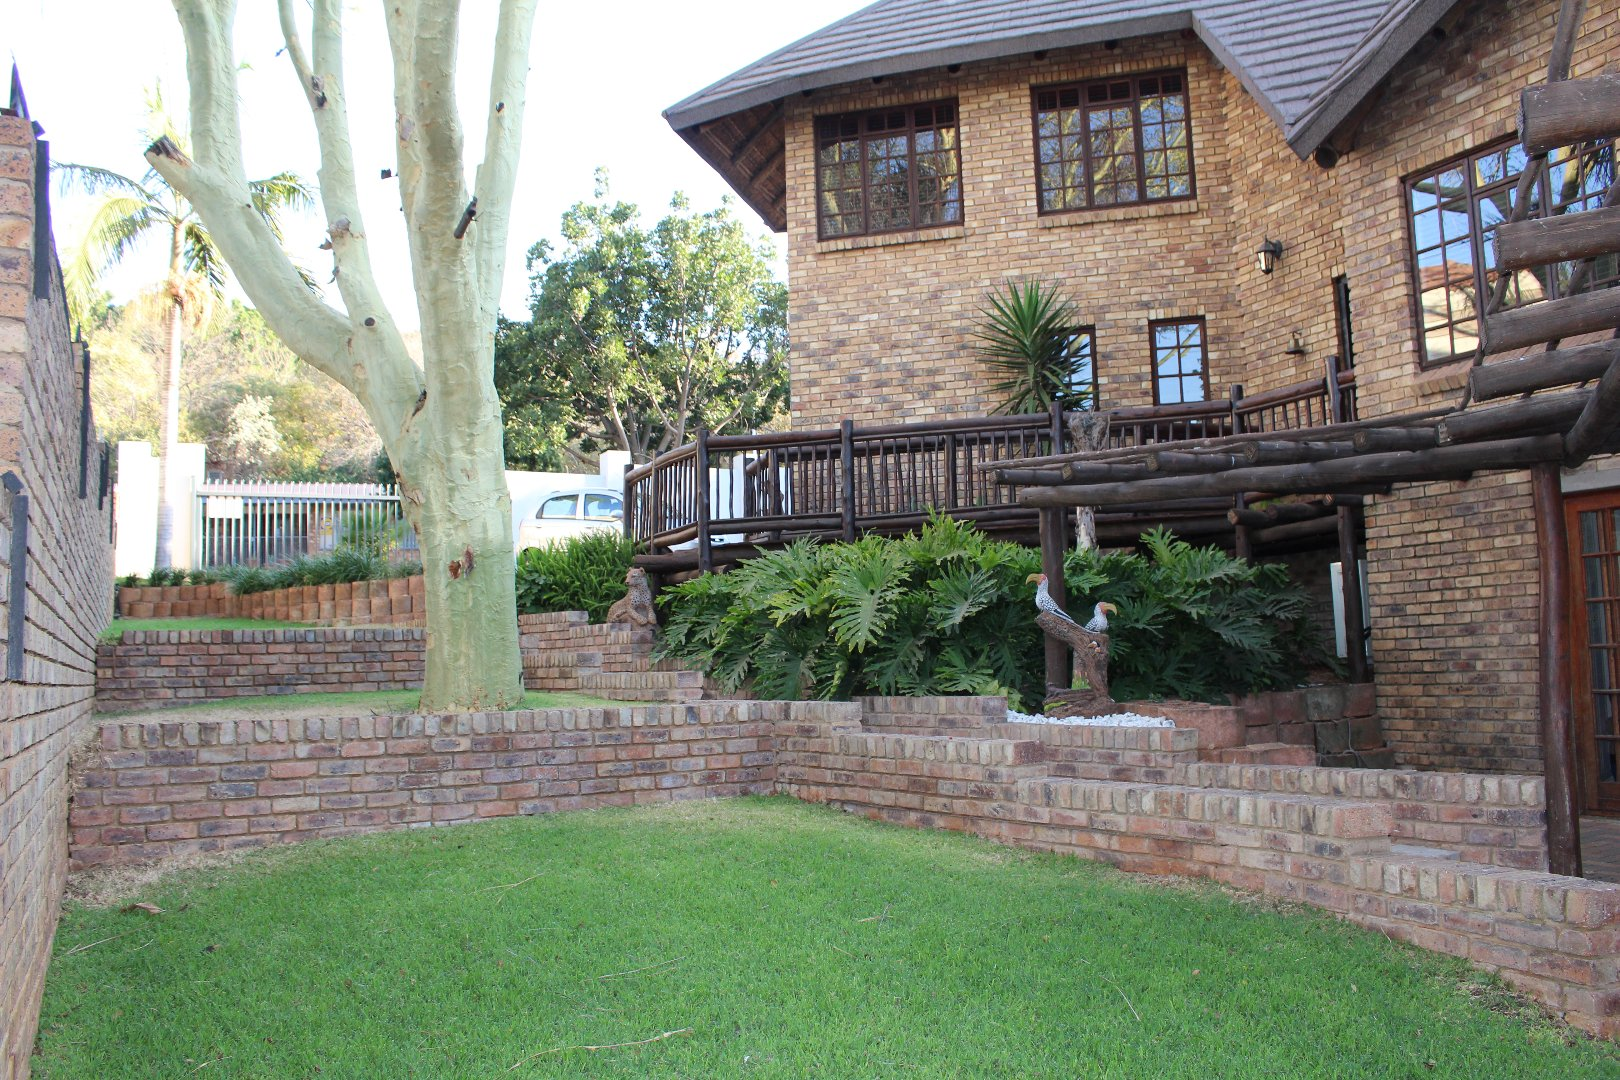 4 Bedroom House for sale in Montana Park ENT0058051 : photo#18